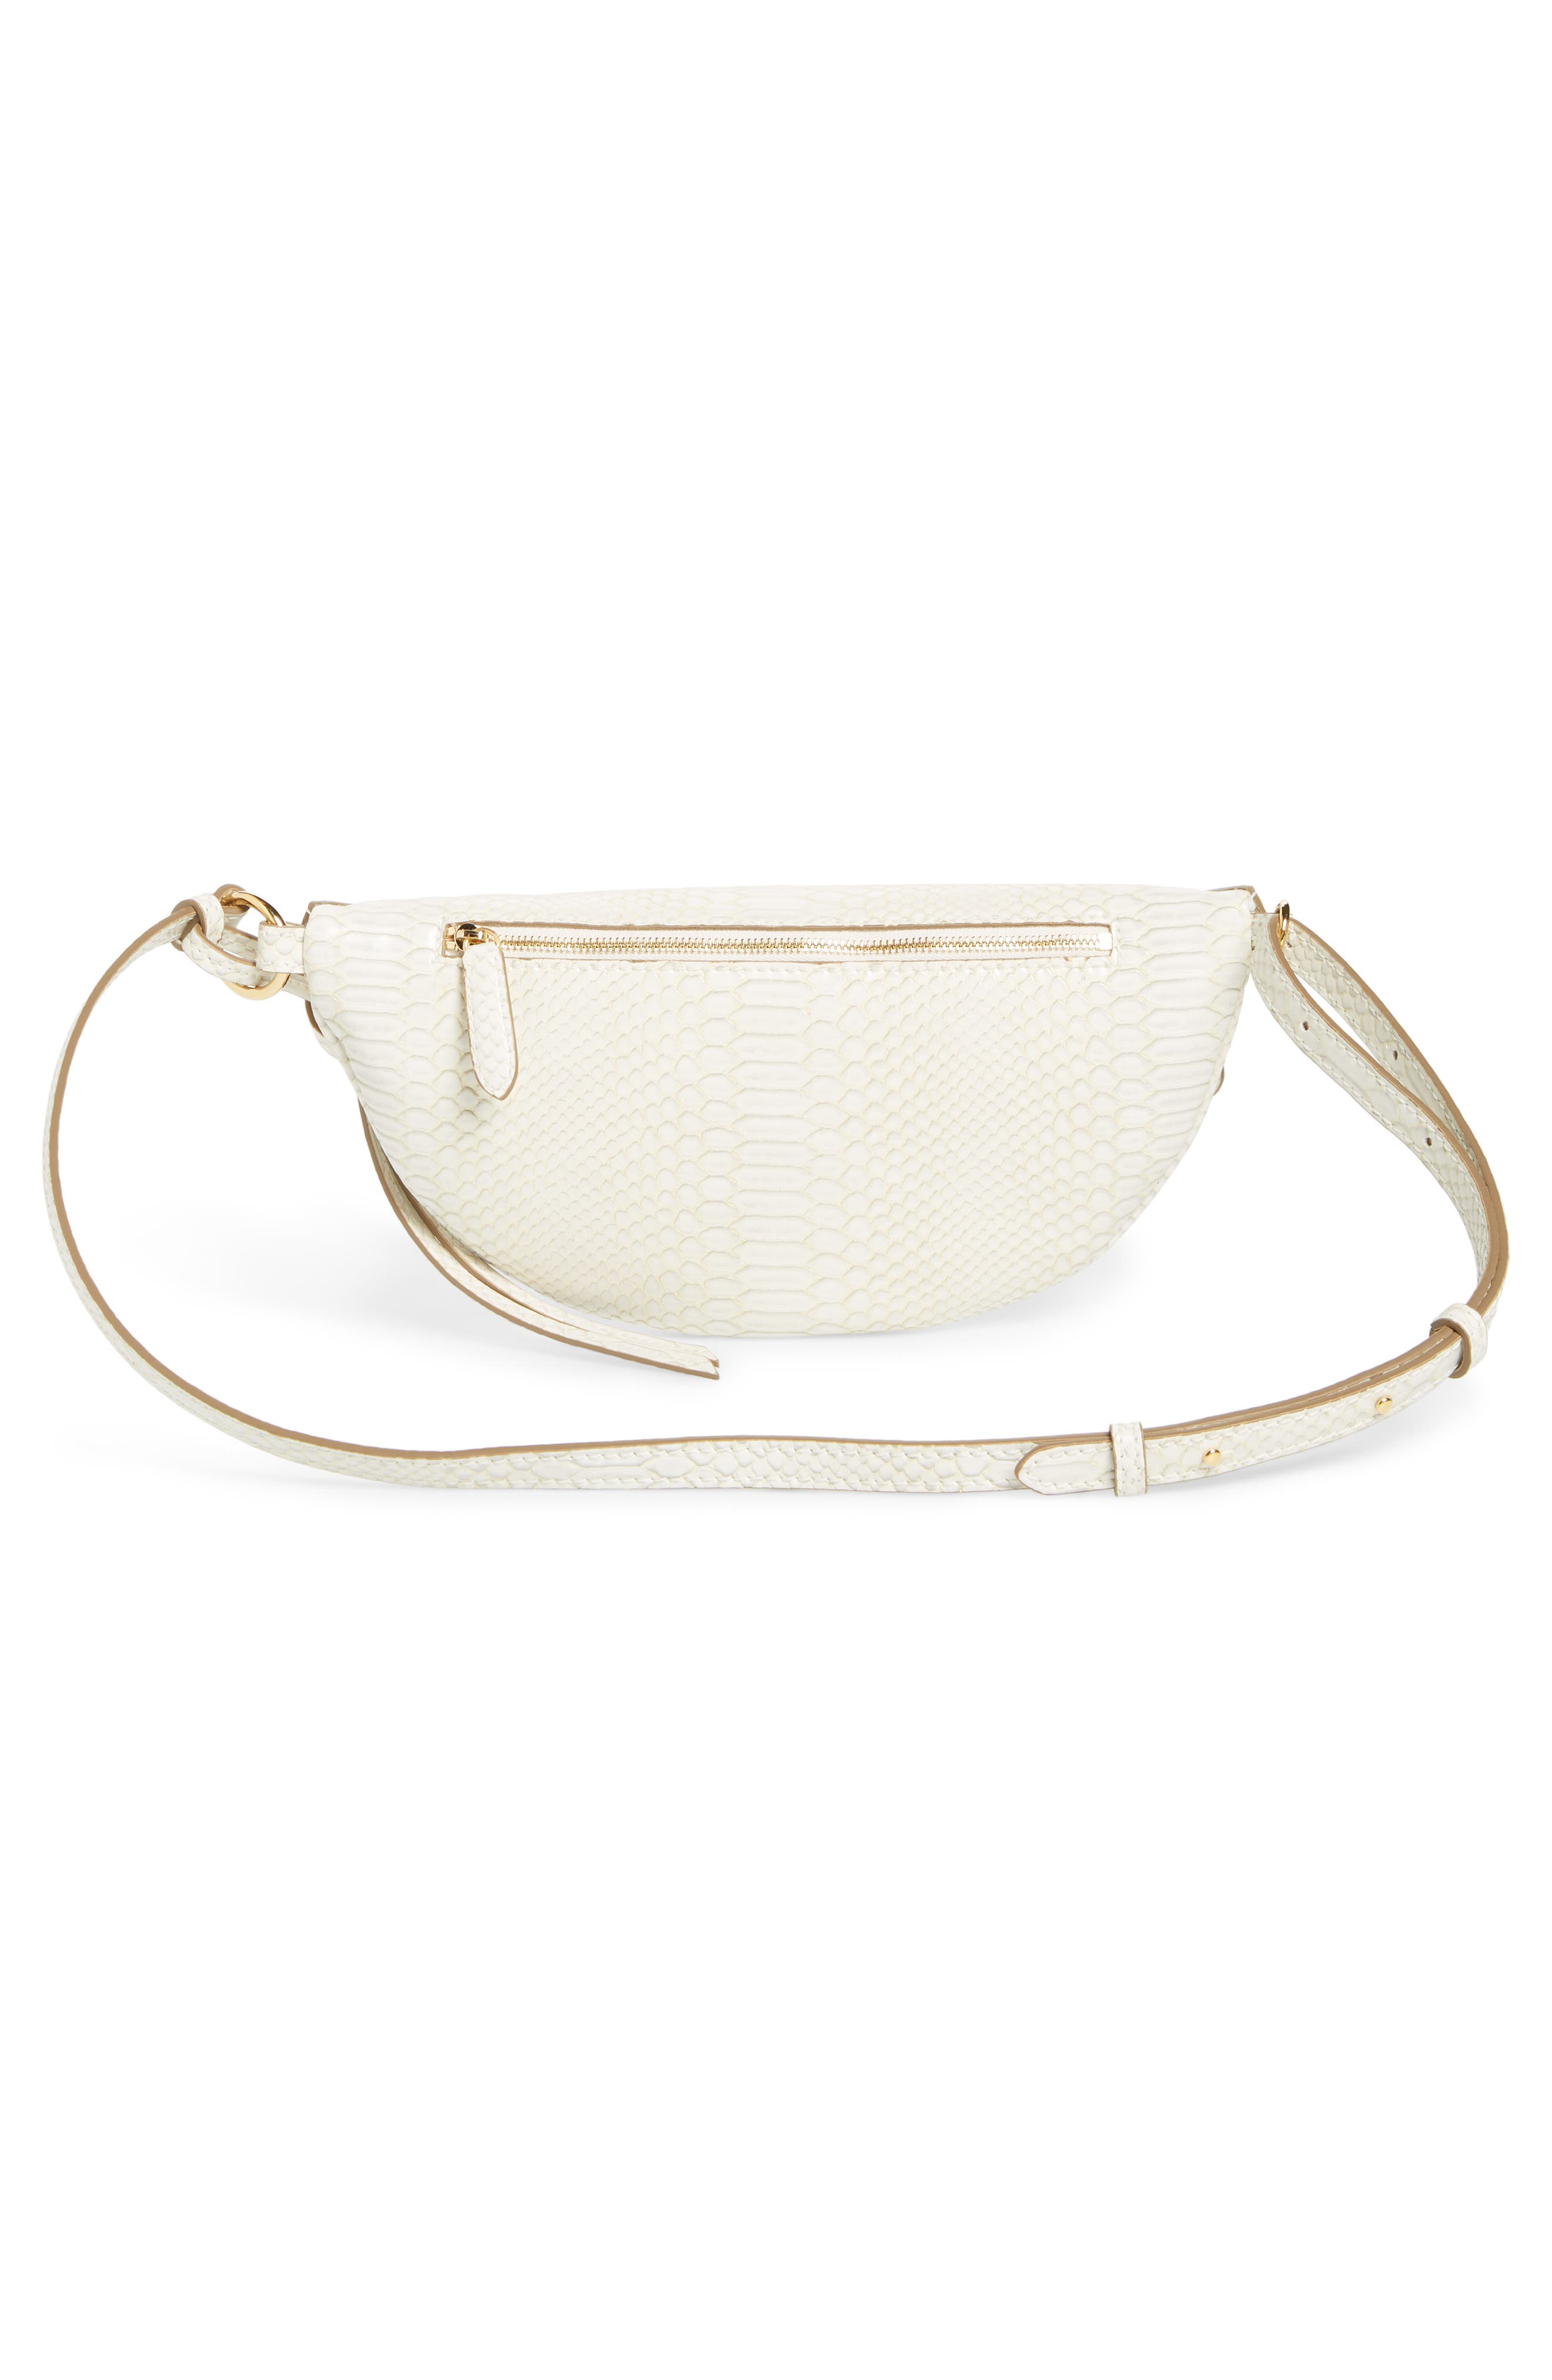 Alter Snake Faux Leather Fanny Pack,                             Alternate thumbnail 4, color,                             IVORY